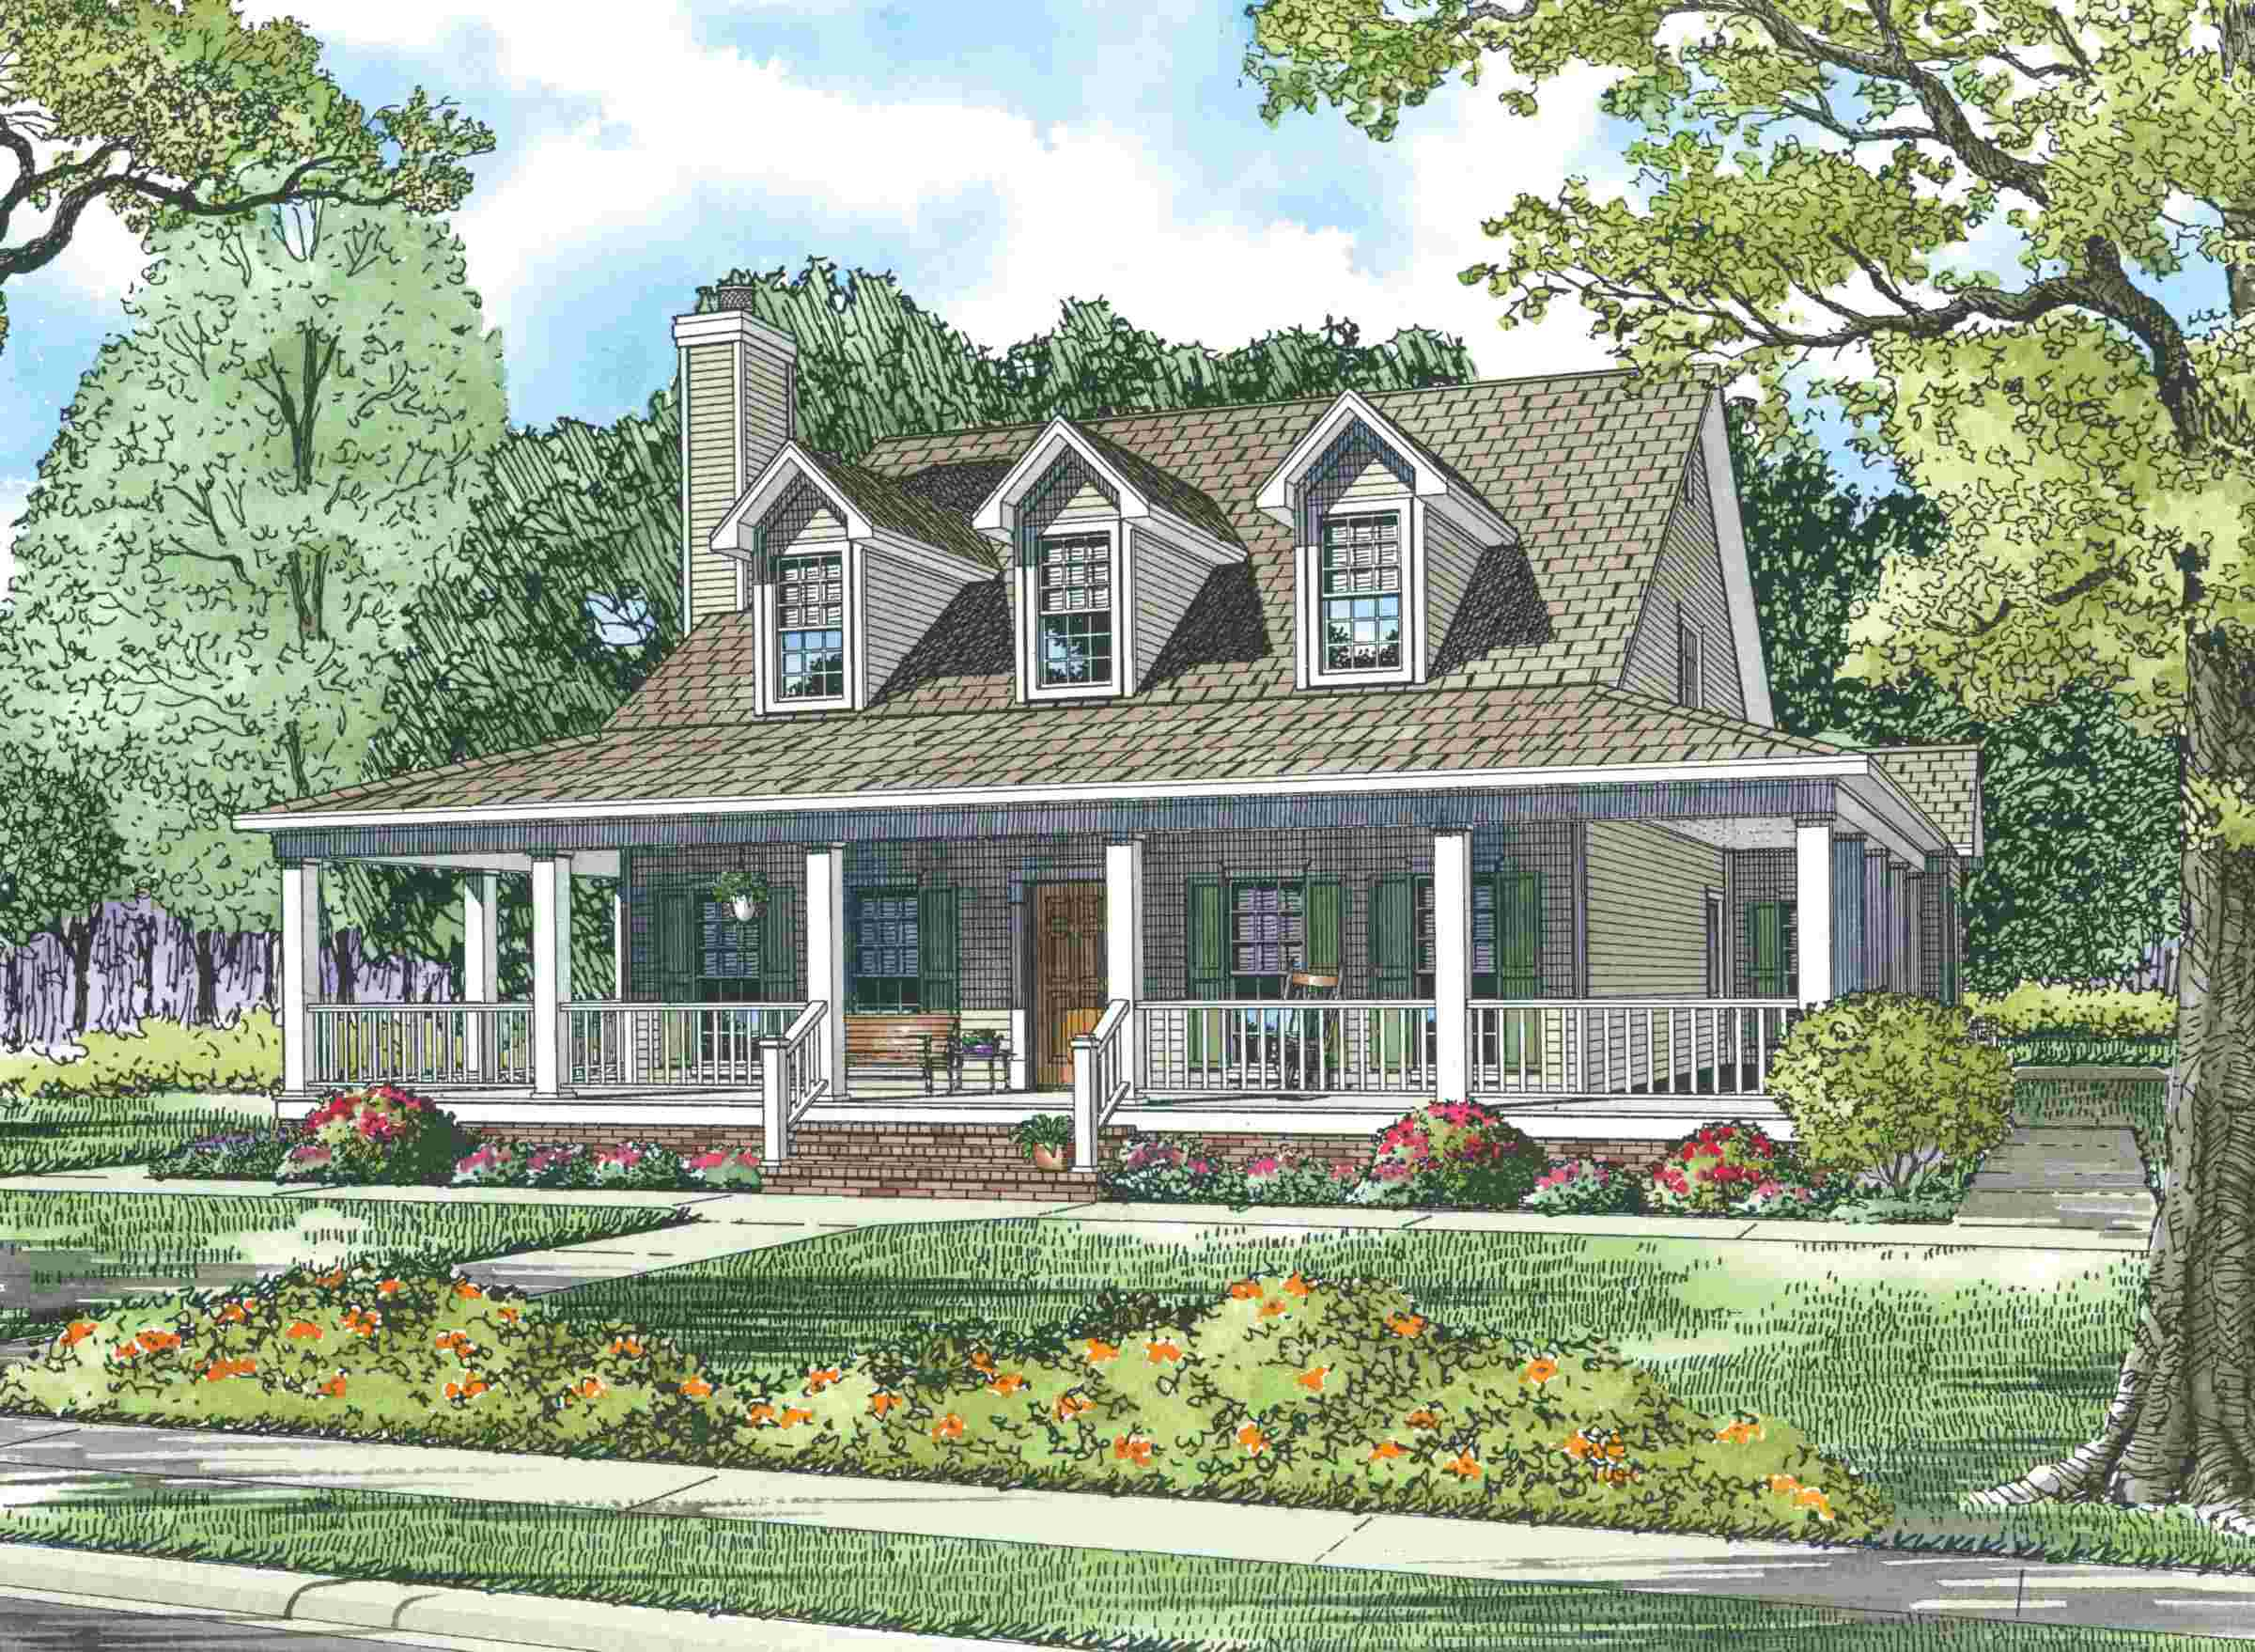 Cape Cod House With Wrap Around Porch | SDL Custom Homes Cape House Plans With Wrap Around Porch on house plan with carport, house plan with vaulted ceilings, house plan with courtyard, house plan with butler's pantry, house plan with back porch, house plan with balcony, house plan with 3 bedrooms, house plan with front porch, house plan with large windows, house plan with foyer, house plan with breezeway, house plan with rv parking, house plan with dormers, house plan with basement, house plan with breakfast nook, house plan with swimming pool, house plan with office, house plan with garage, house plans with porches, house plan with mud room,